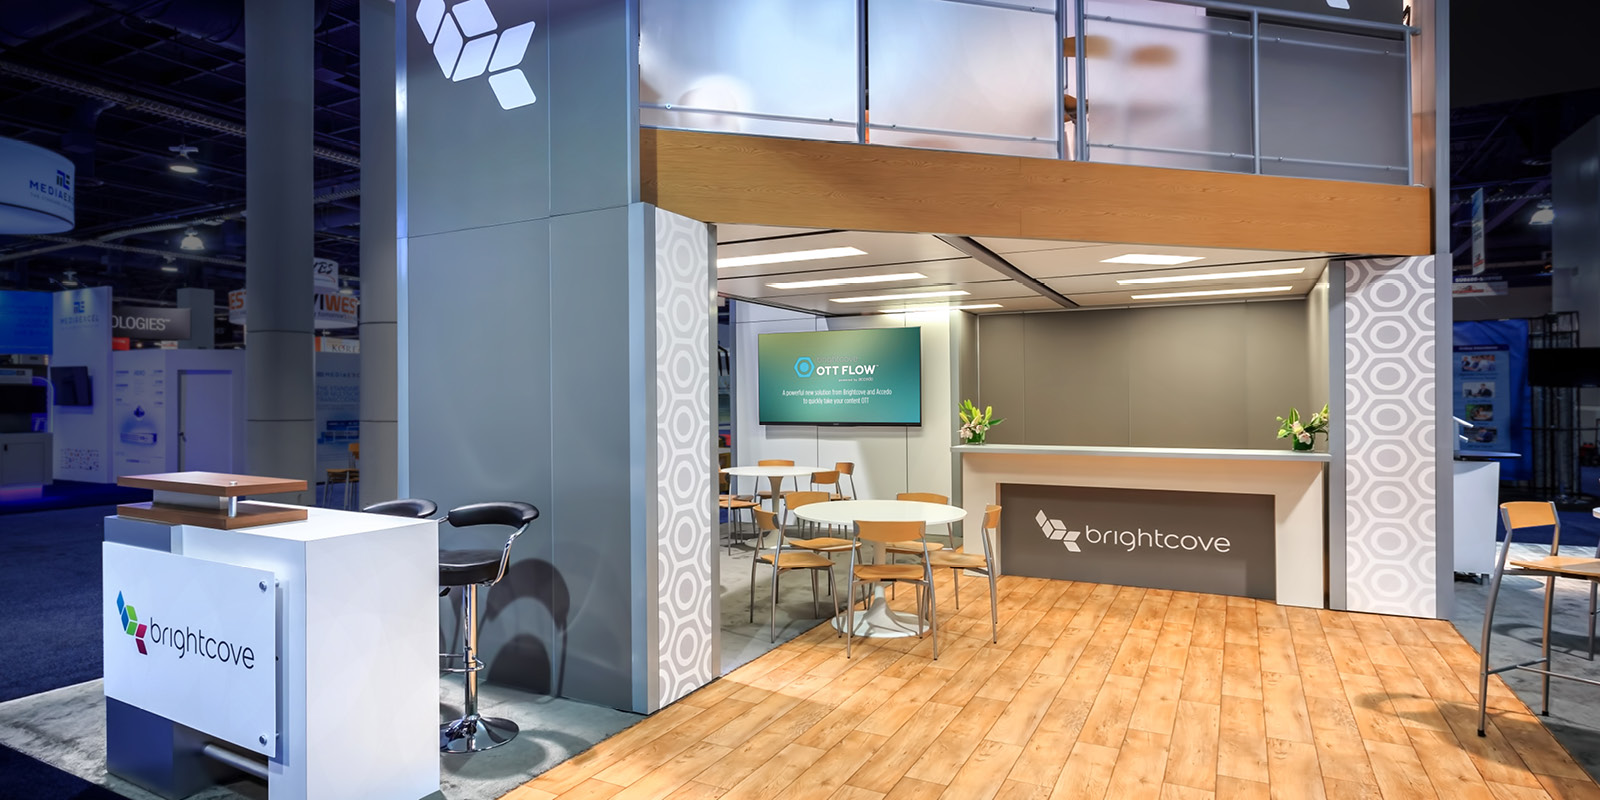 Hill & Partners Rental Branded Environment Trade Show Exhibit for Brightcove